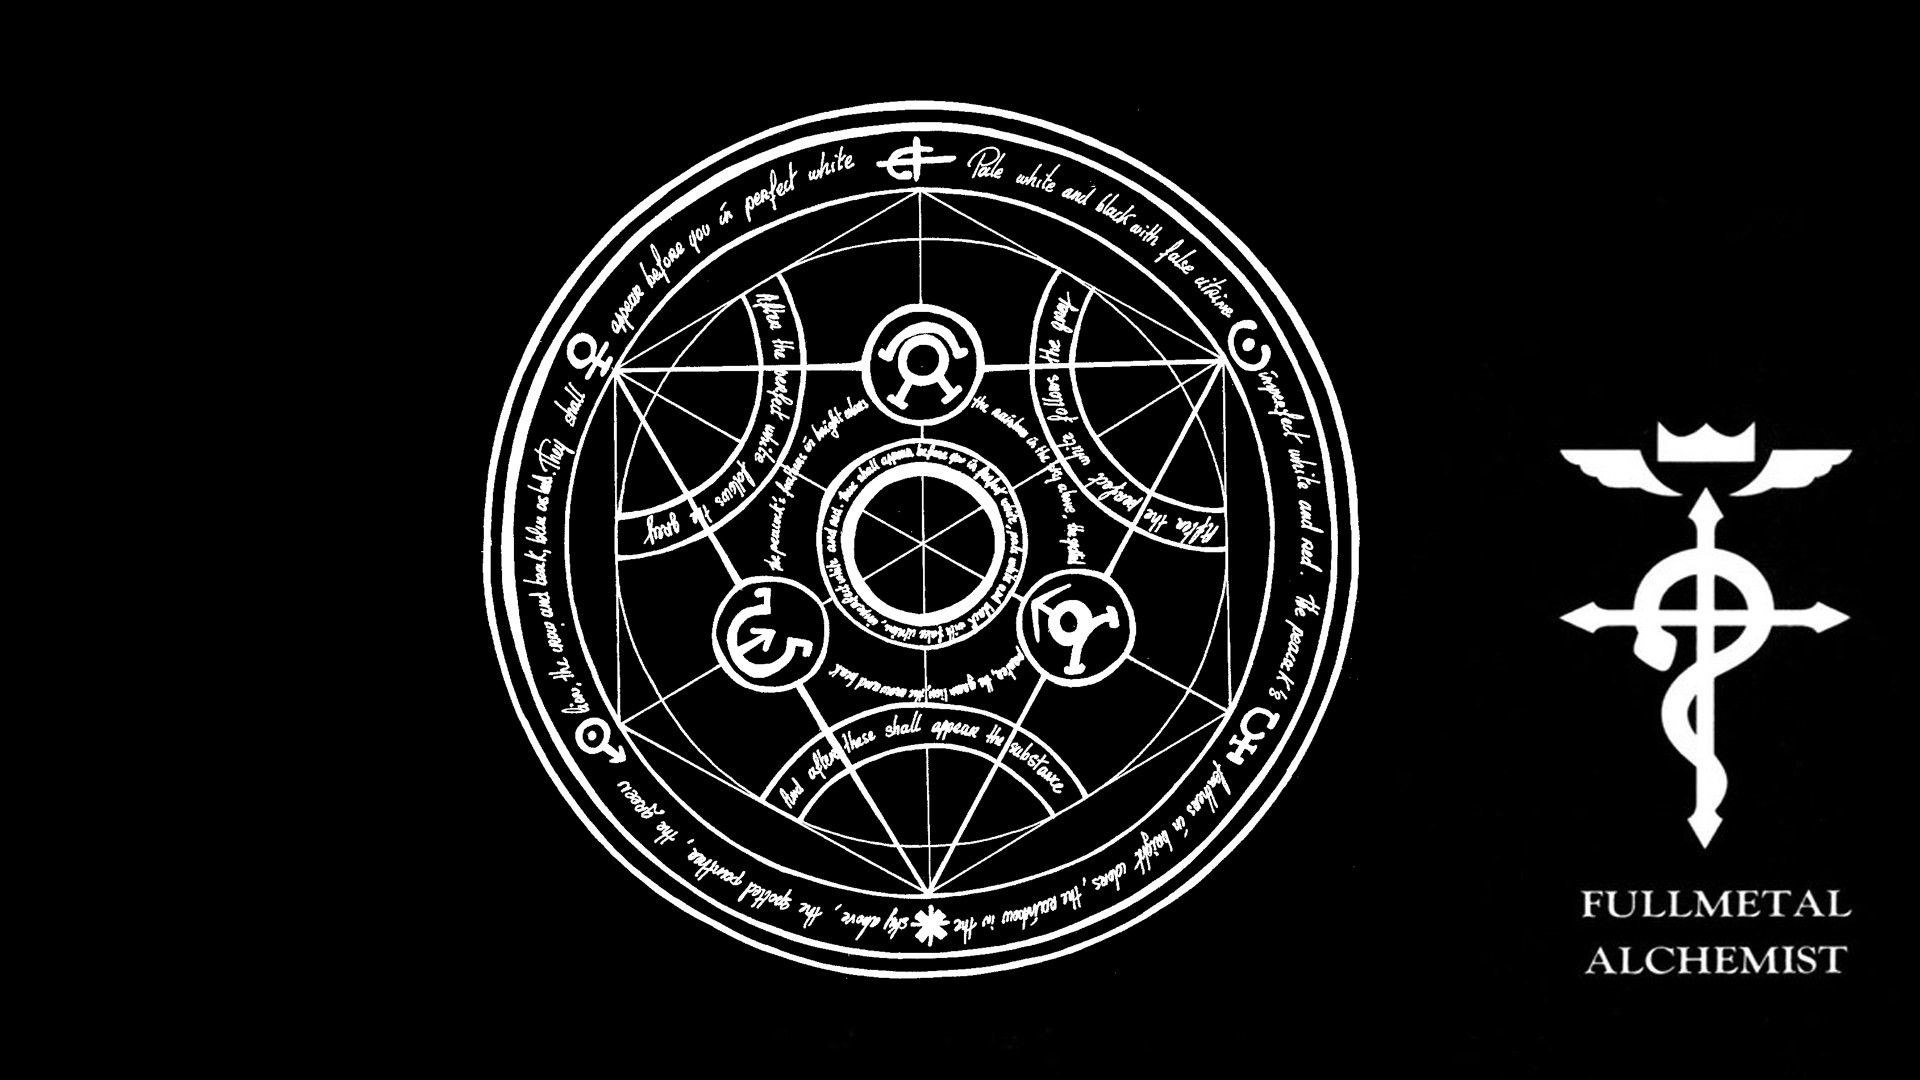 Fullmetal Alchemist Brotherhood HD Background Wallpapers with ID 3948 on  Anime category in HD Wallpaper Site. Fullmetal Alchemist Brotherhood HD  Background …